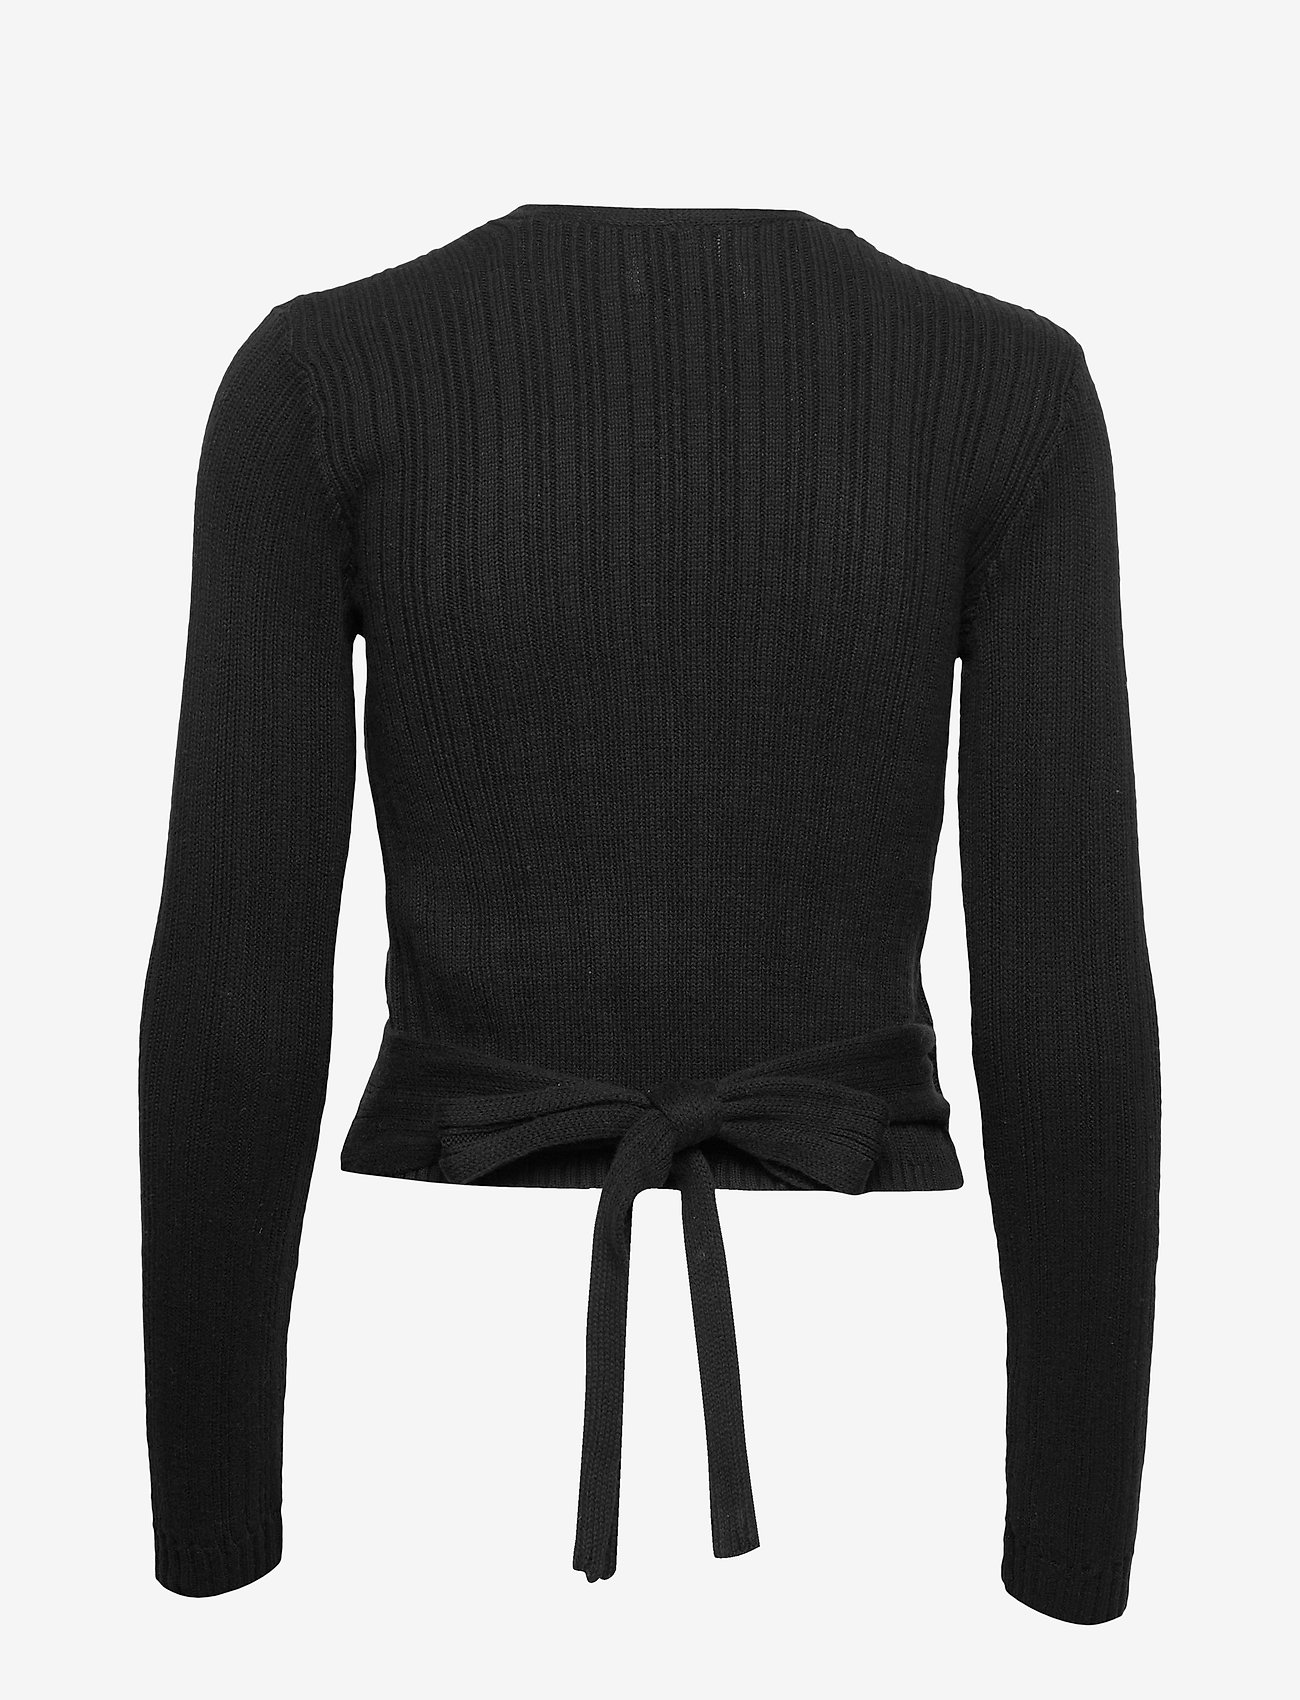 Hollister Tie Back Wrap Sweater - Strikkevarer BLACK DD - Dameklær Spesialtilbud